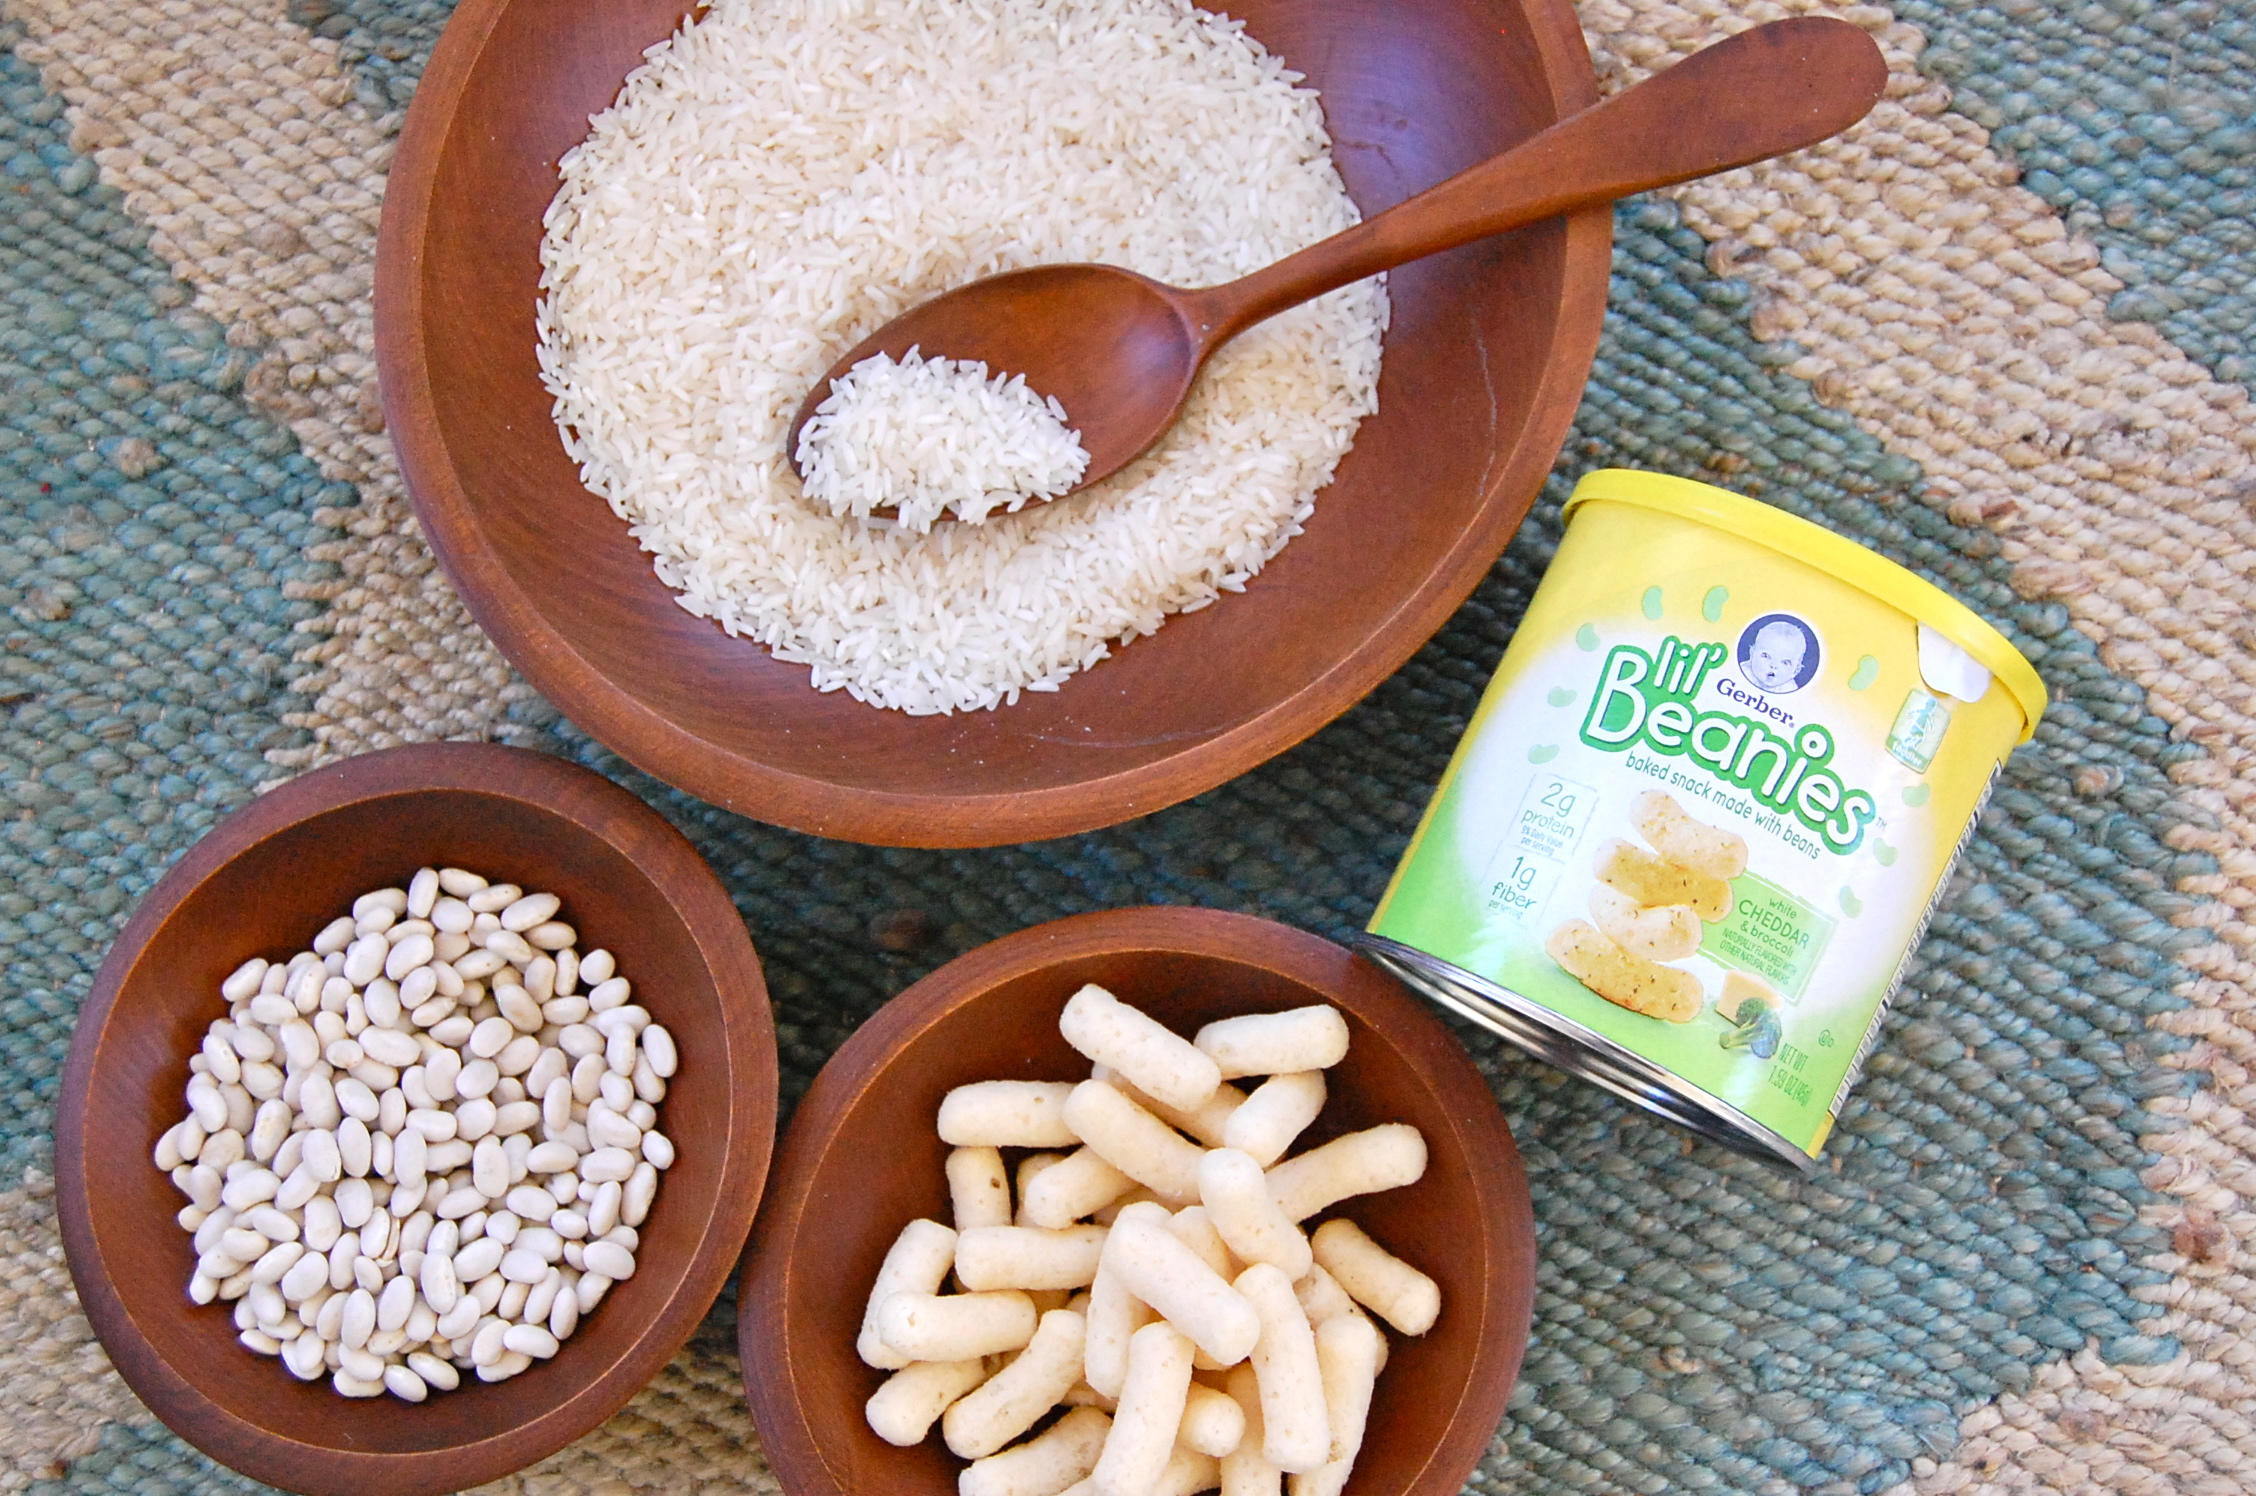 Gerber Lil' Beanies are a great new toddler snack made from navy beans and rice flour. Free of GMOs, artificial flavors, colors and preservatives. #healthysnack #gerberlilbeanies #toddlersnack juliannegray.com